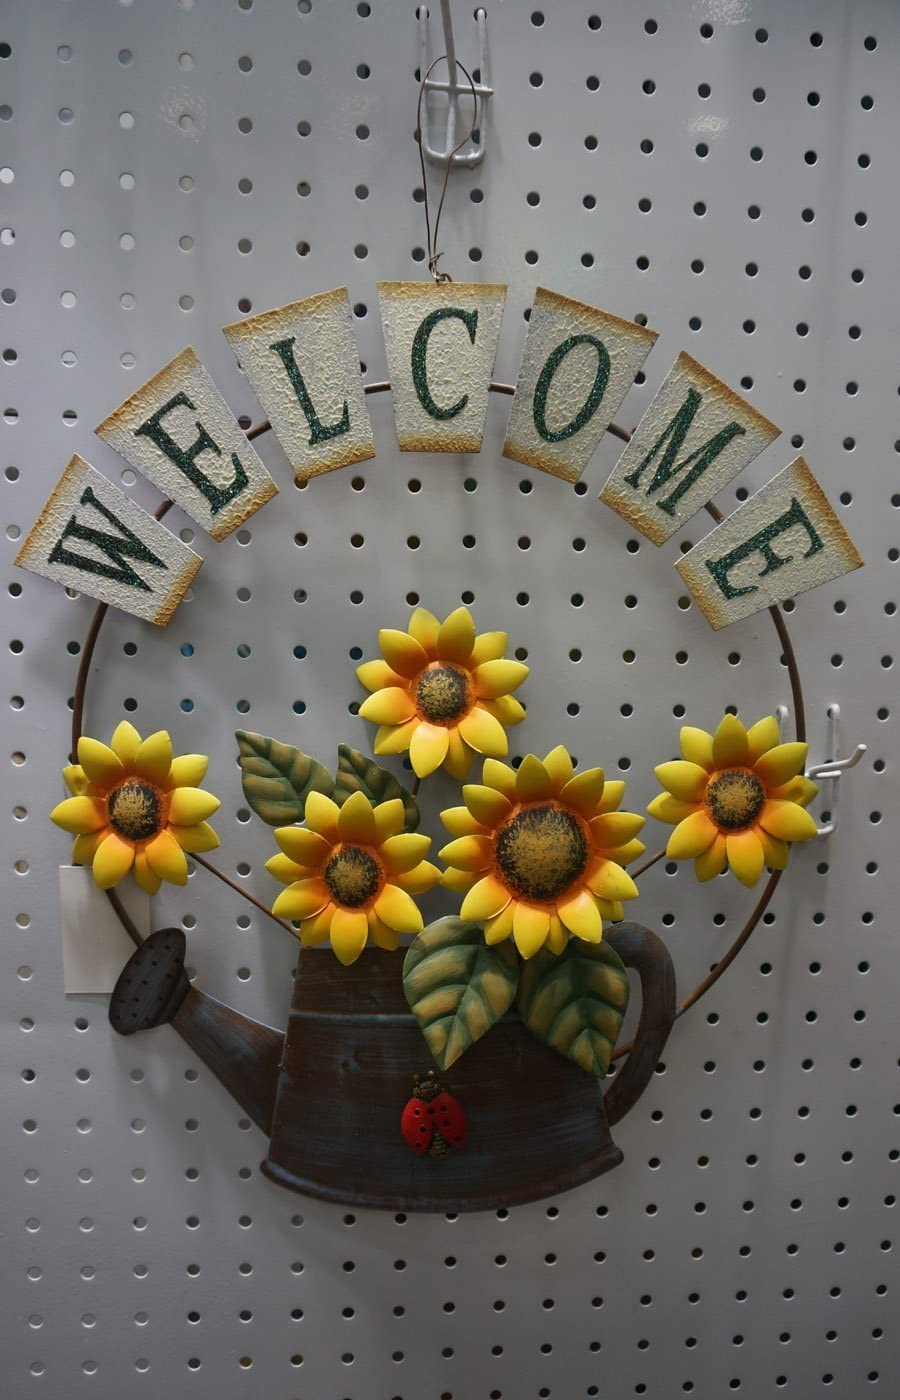 hadaaya gifts & home decor Garden Themed Metal Welcome Sign, Shabby Chic, with Sunflower and Growing Form a Watering can Design